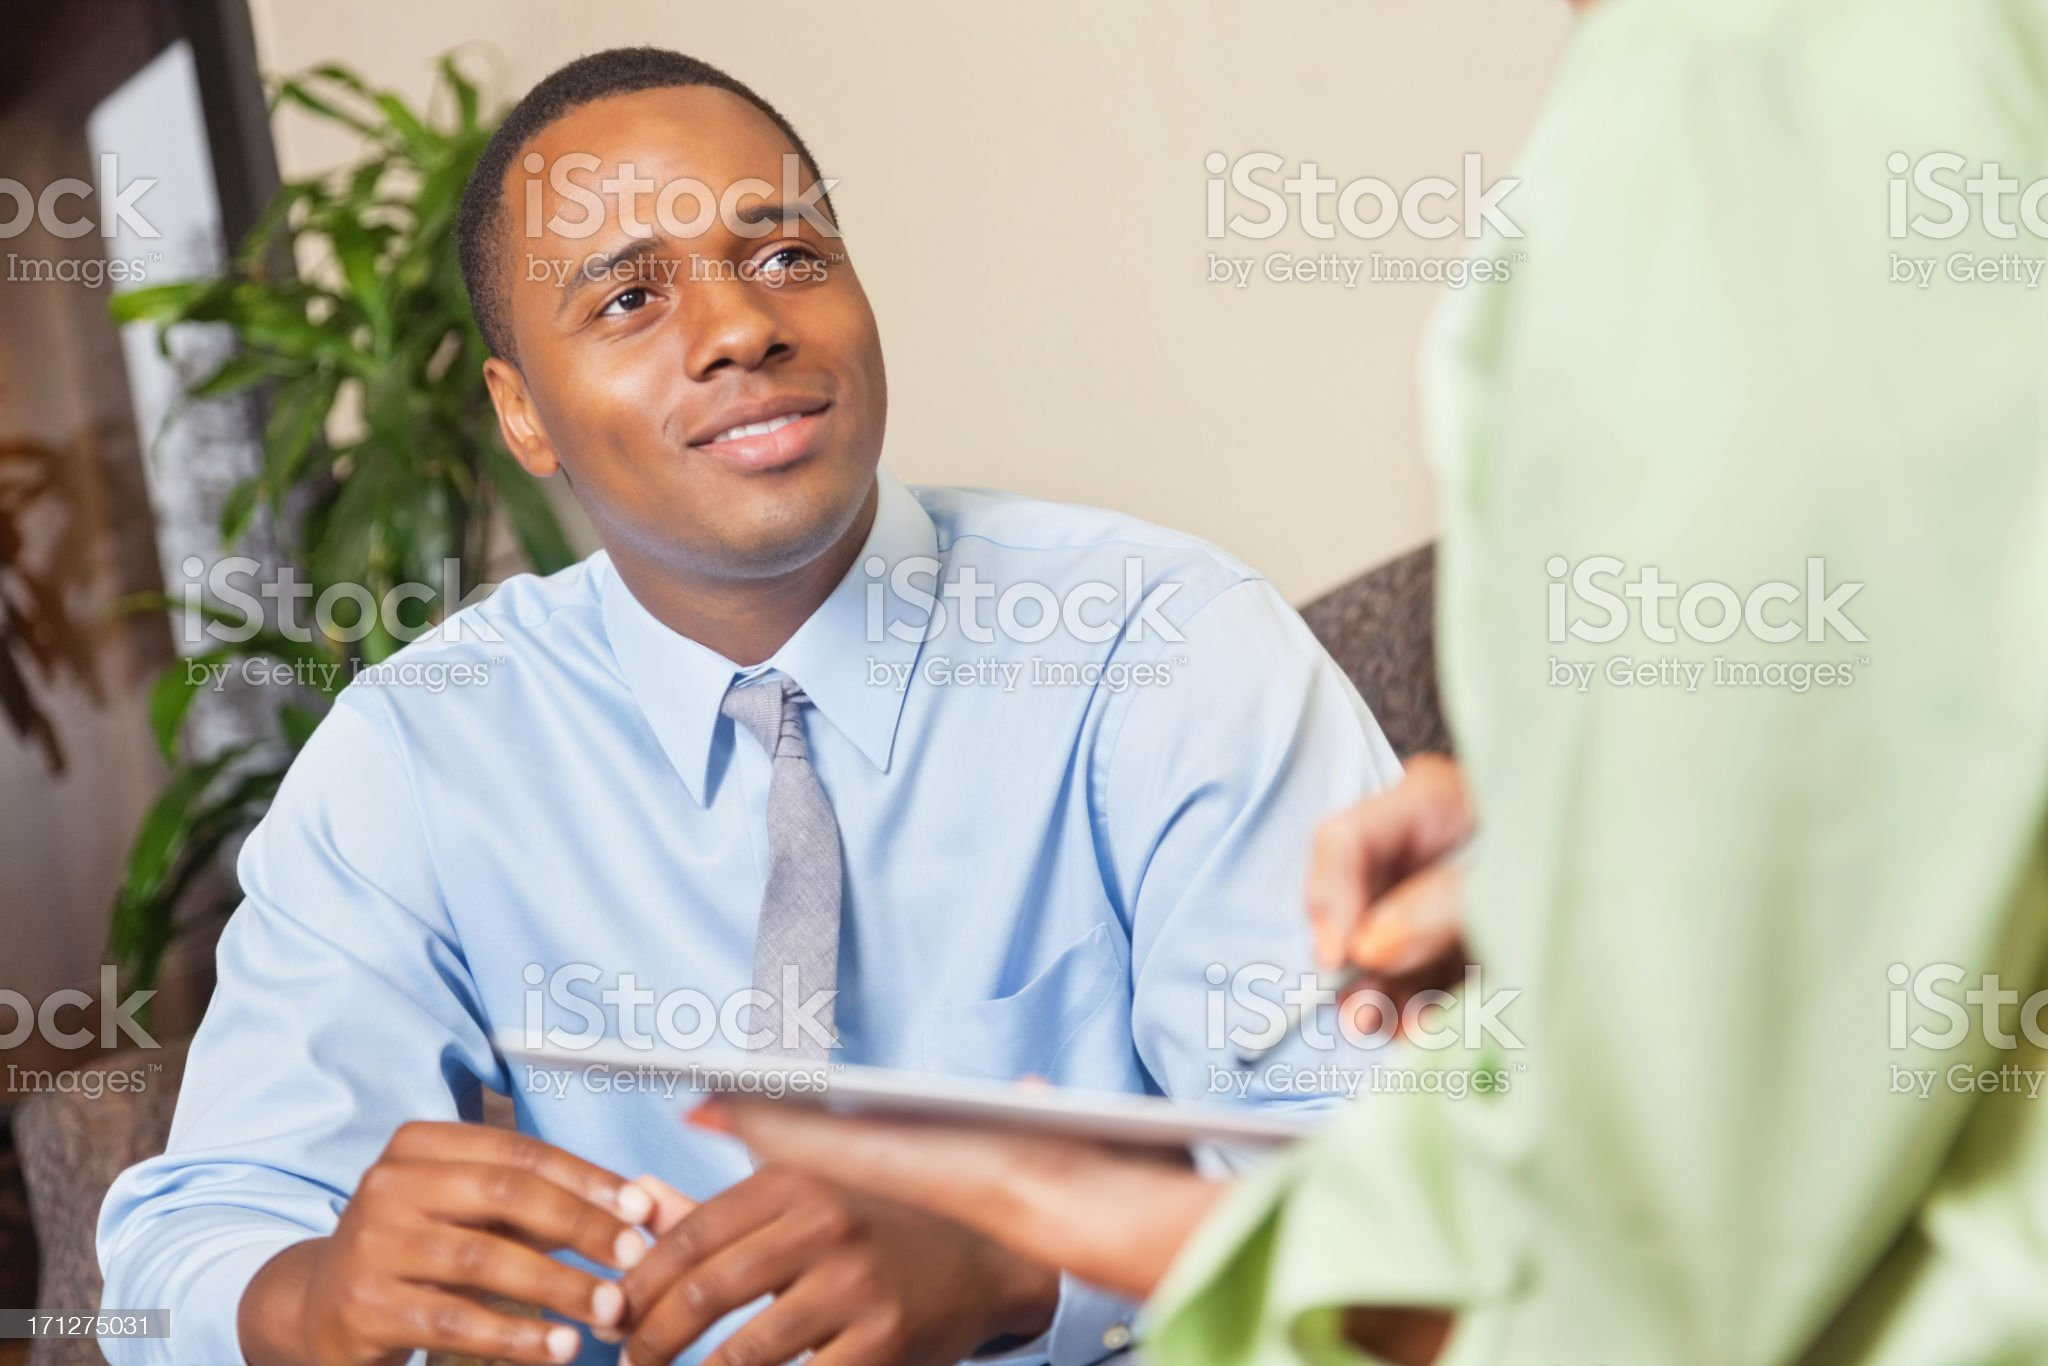 Professional young man in business meeting or counseling session royalty-free stock photo